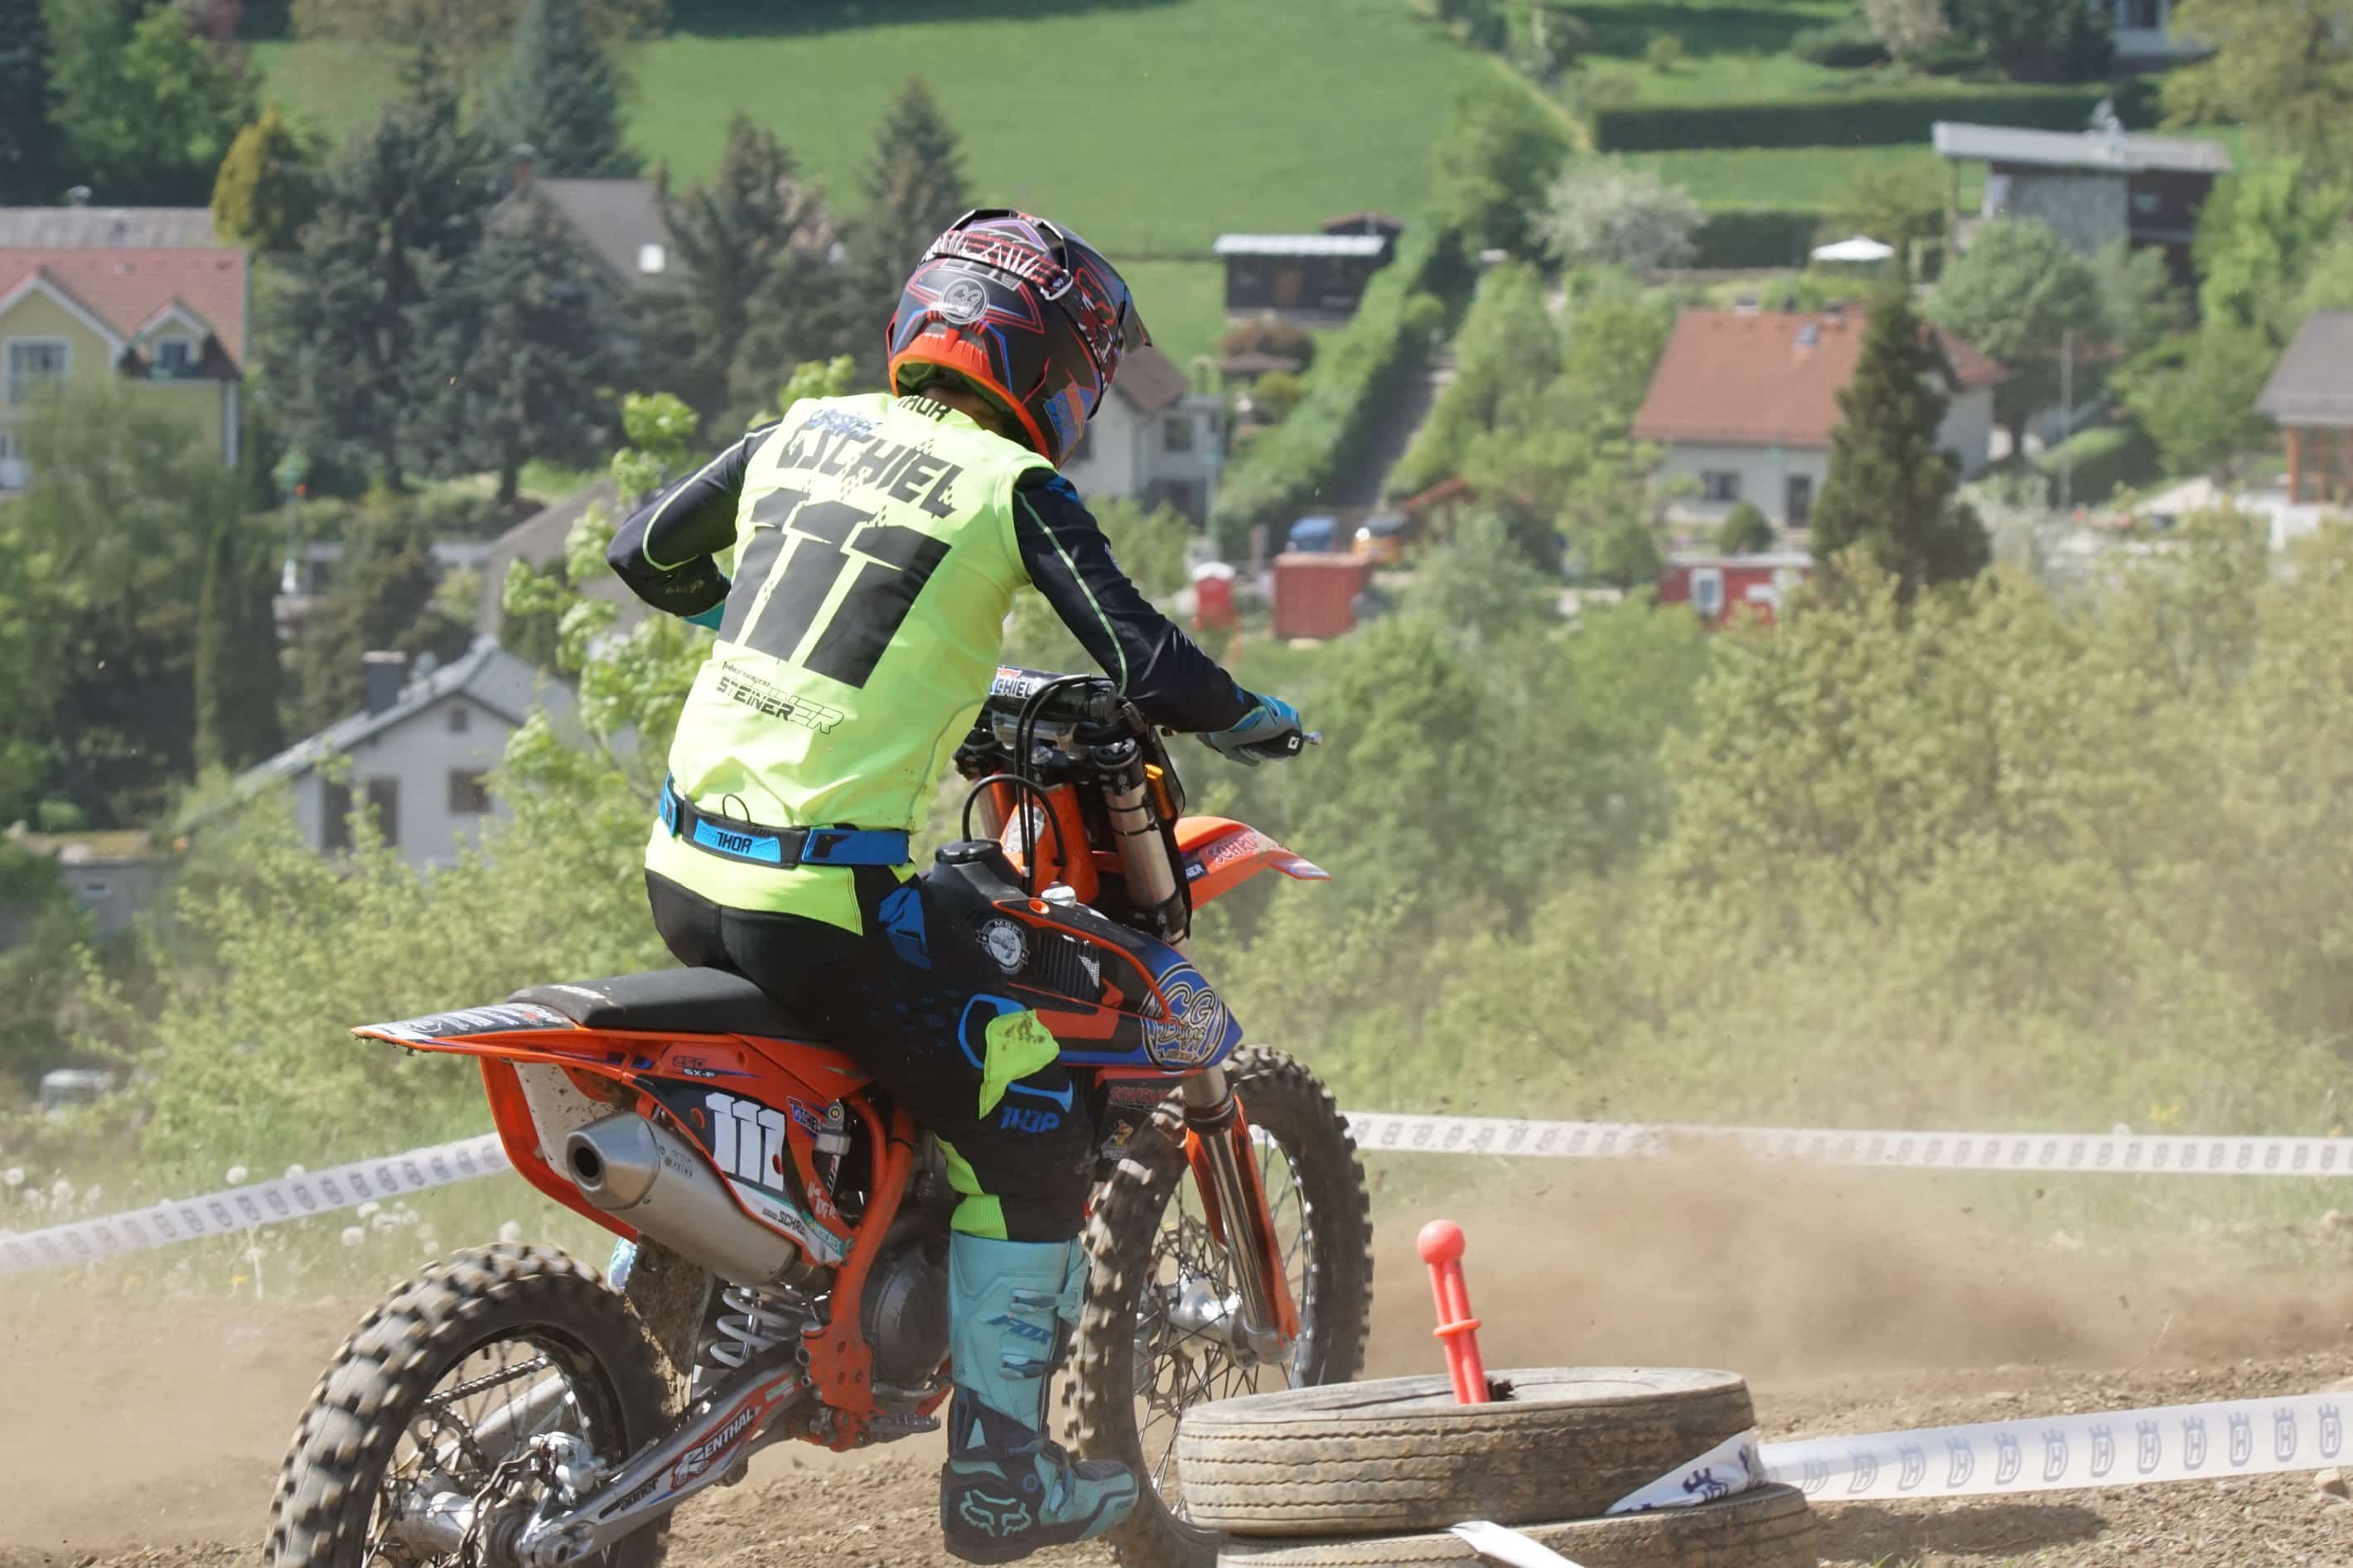 DSC 142_Moto Cross Sittendorf Teil1 am 29.04.2018